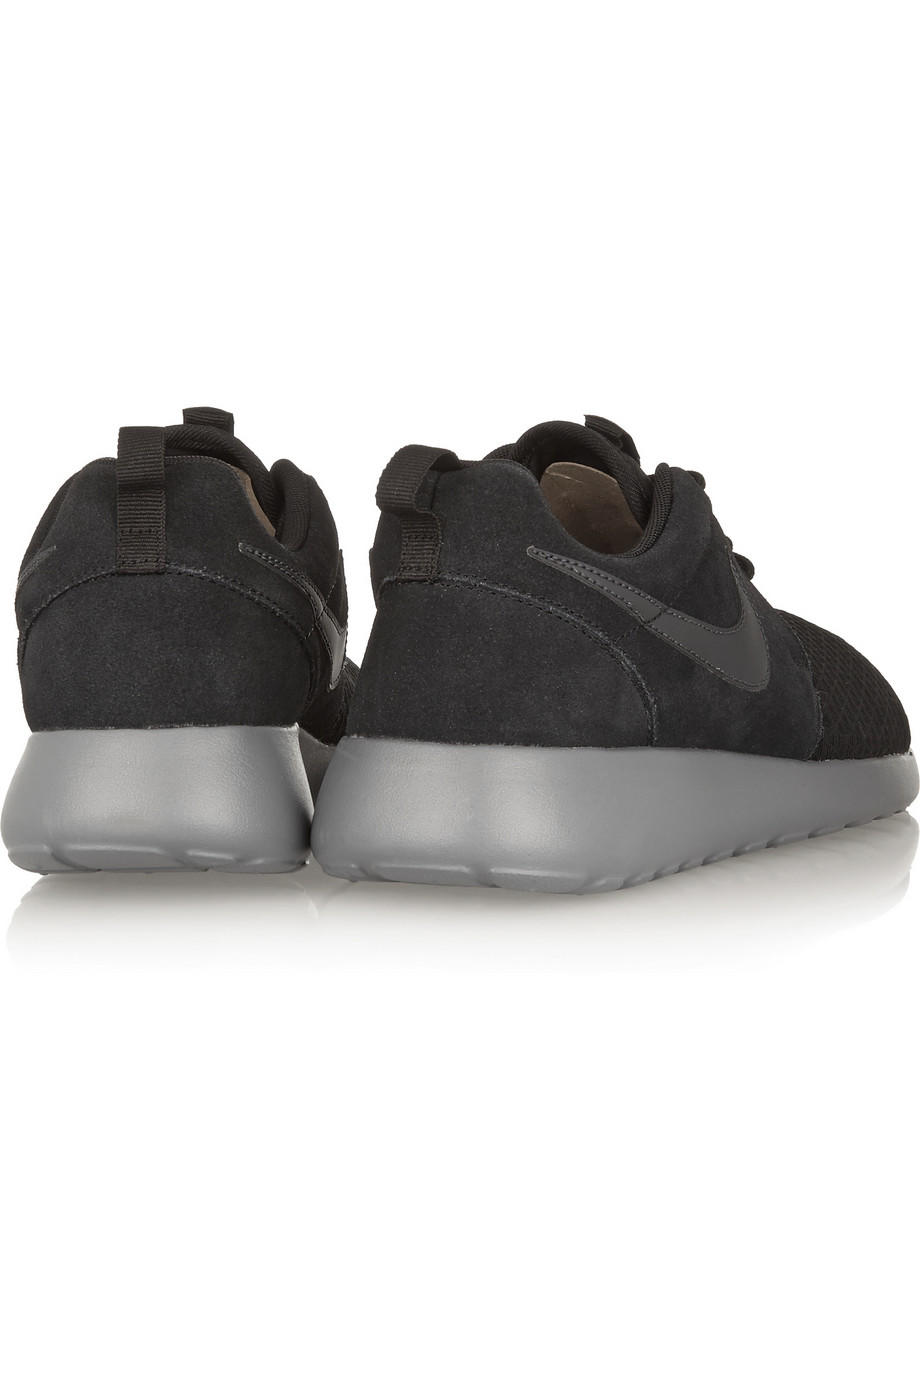 timeless design 314a7 ea598 Nike - Roshe Run Winter mesh and suede sneakers